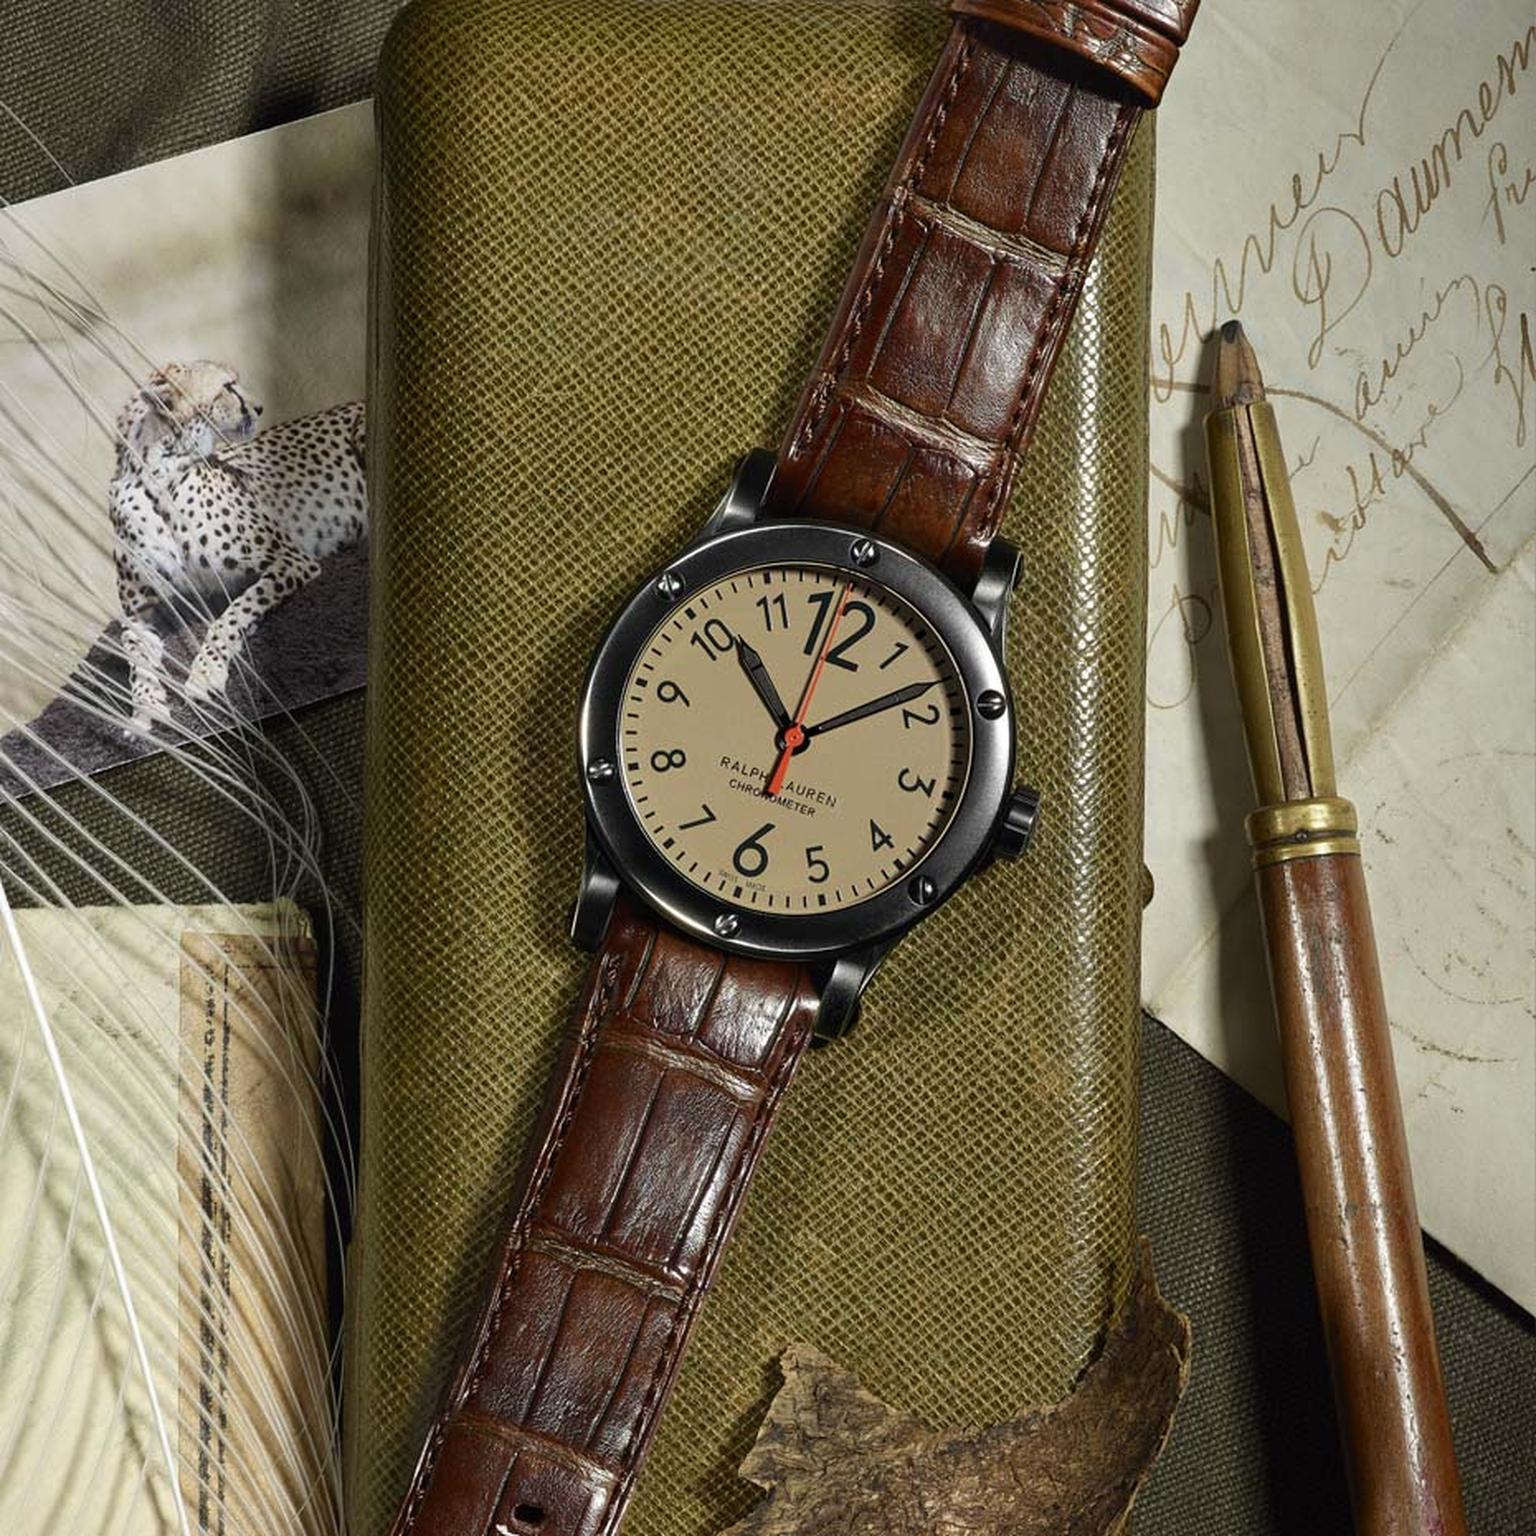 The Ralph Lauren RL67 Safari Chronometer